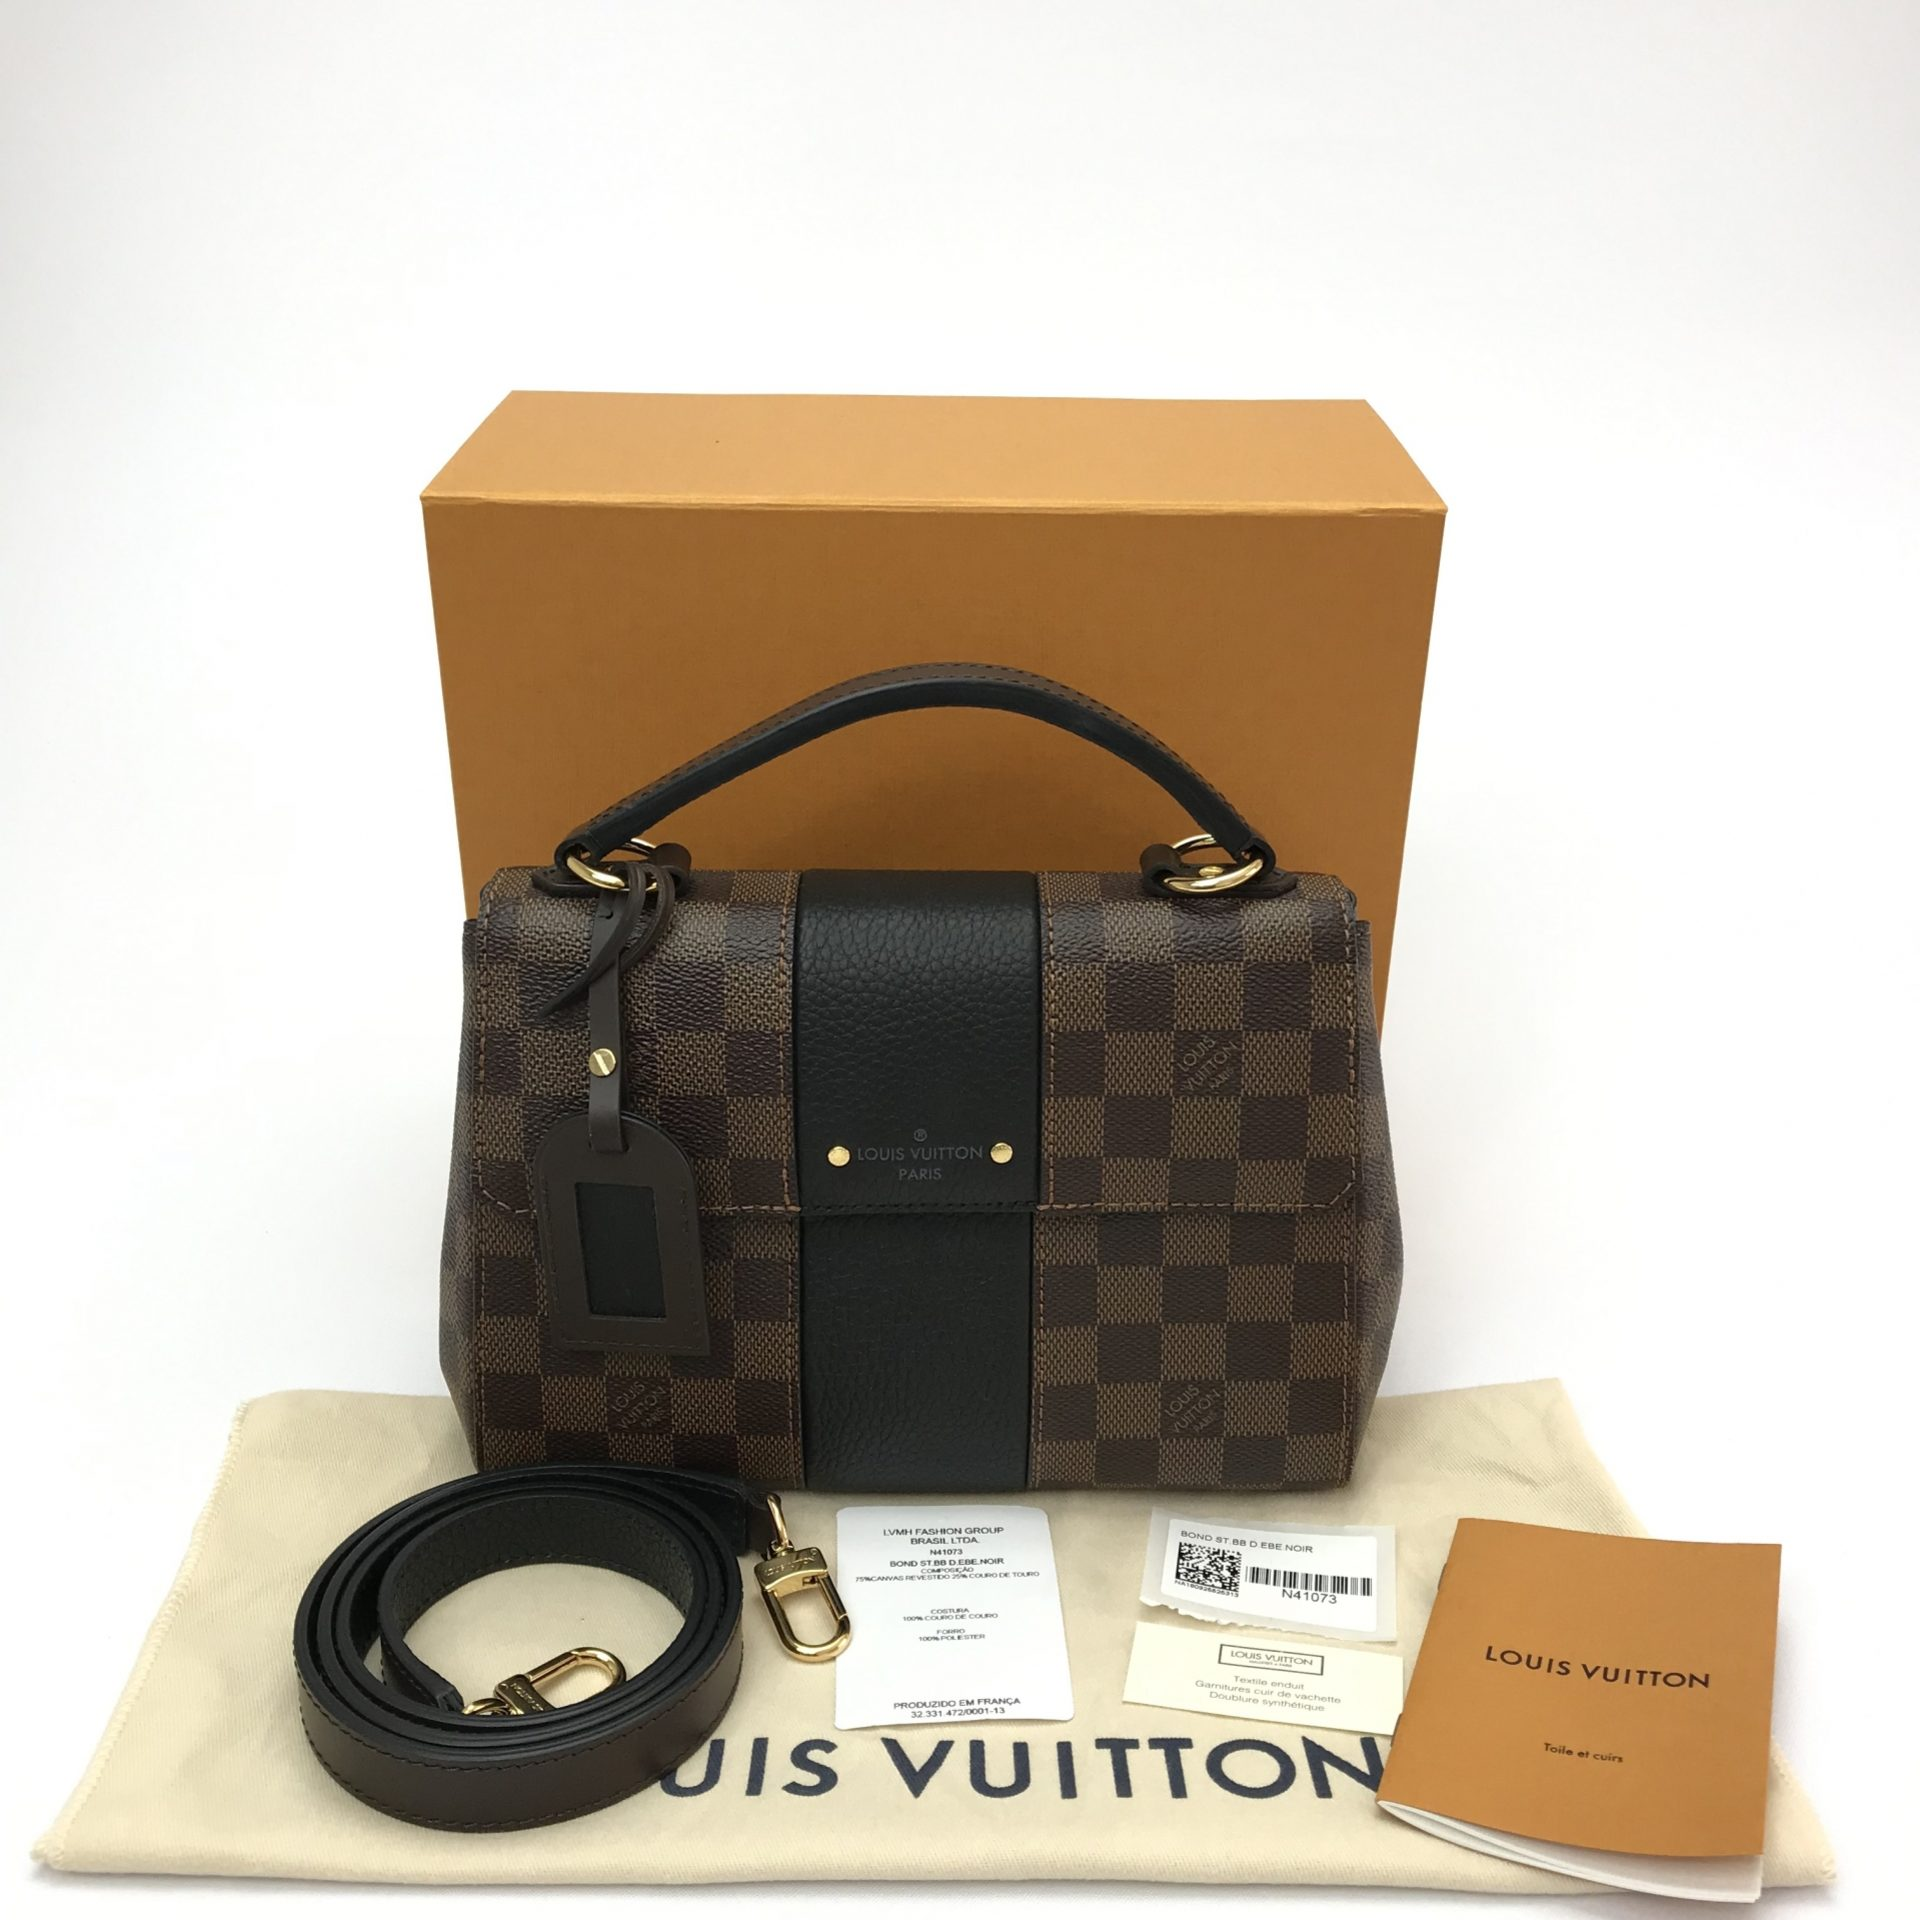 e682ea2a8 Bolsa Louis Vuitton Bond Street BB